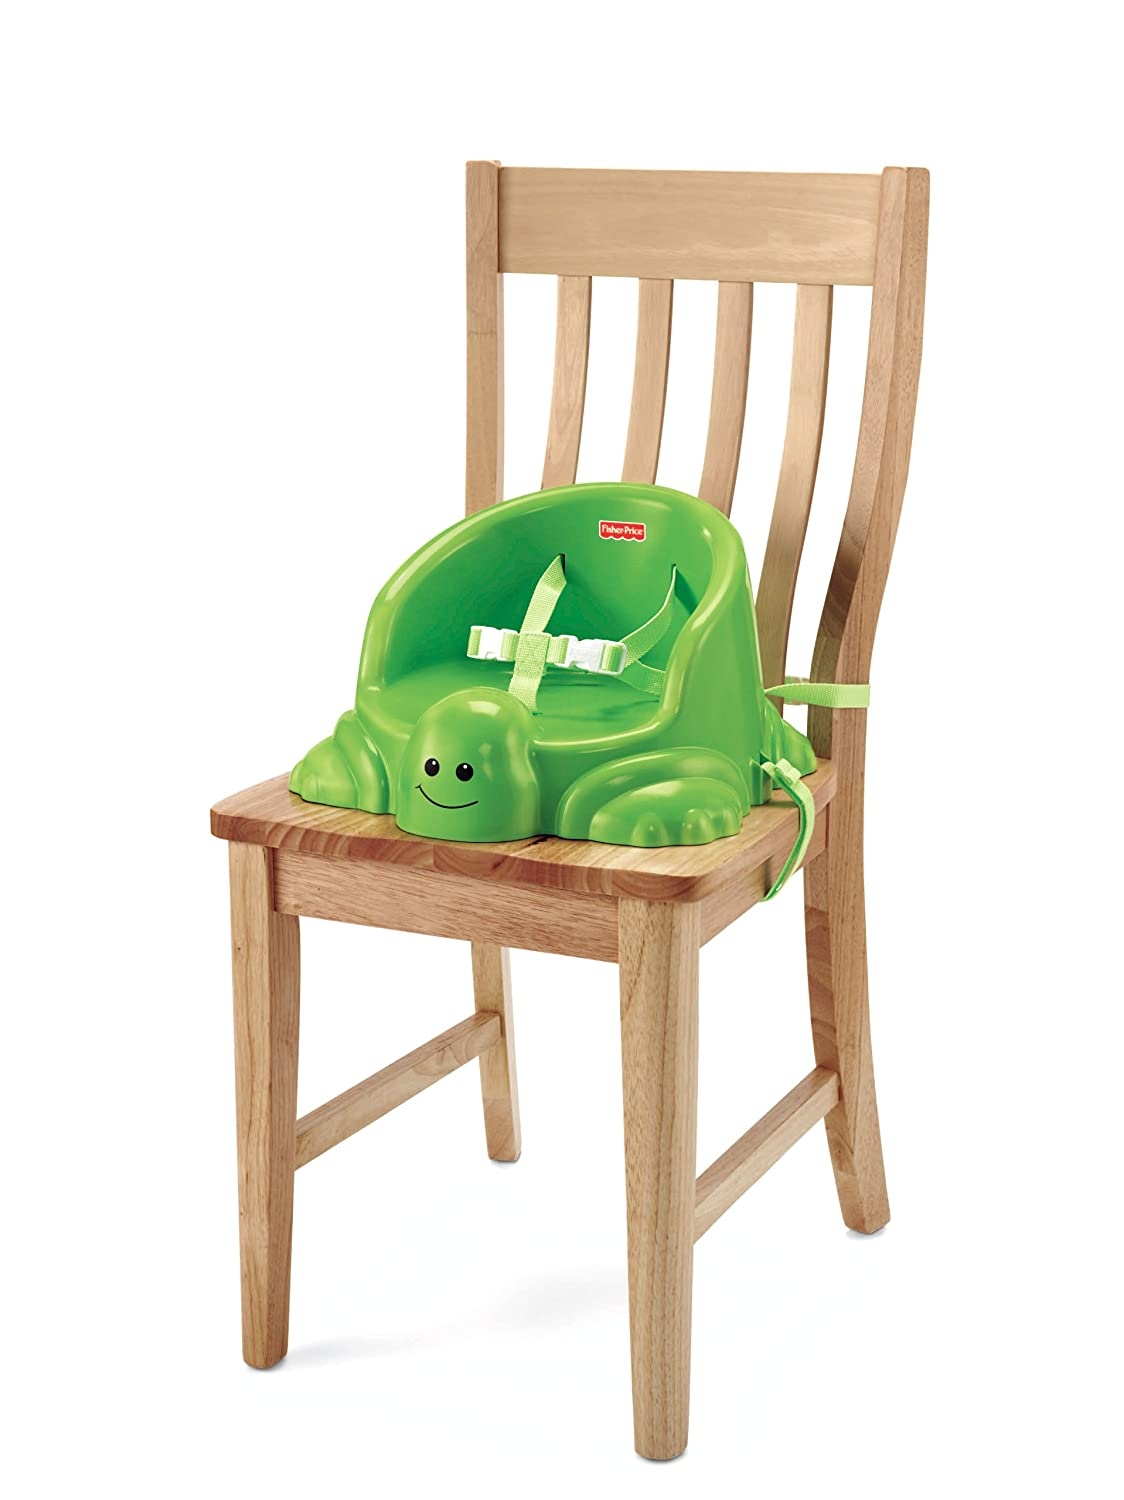 Amazon.com : Fisher-Price Table Time Turtle Booster : Chair Booster ...